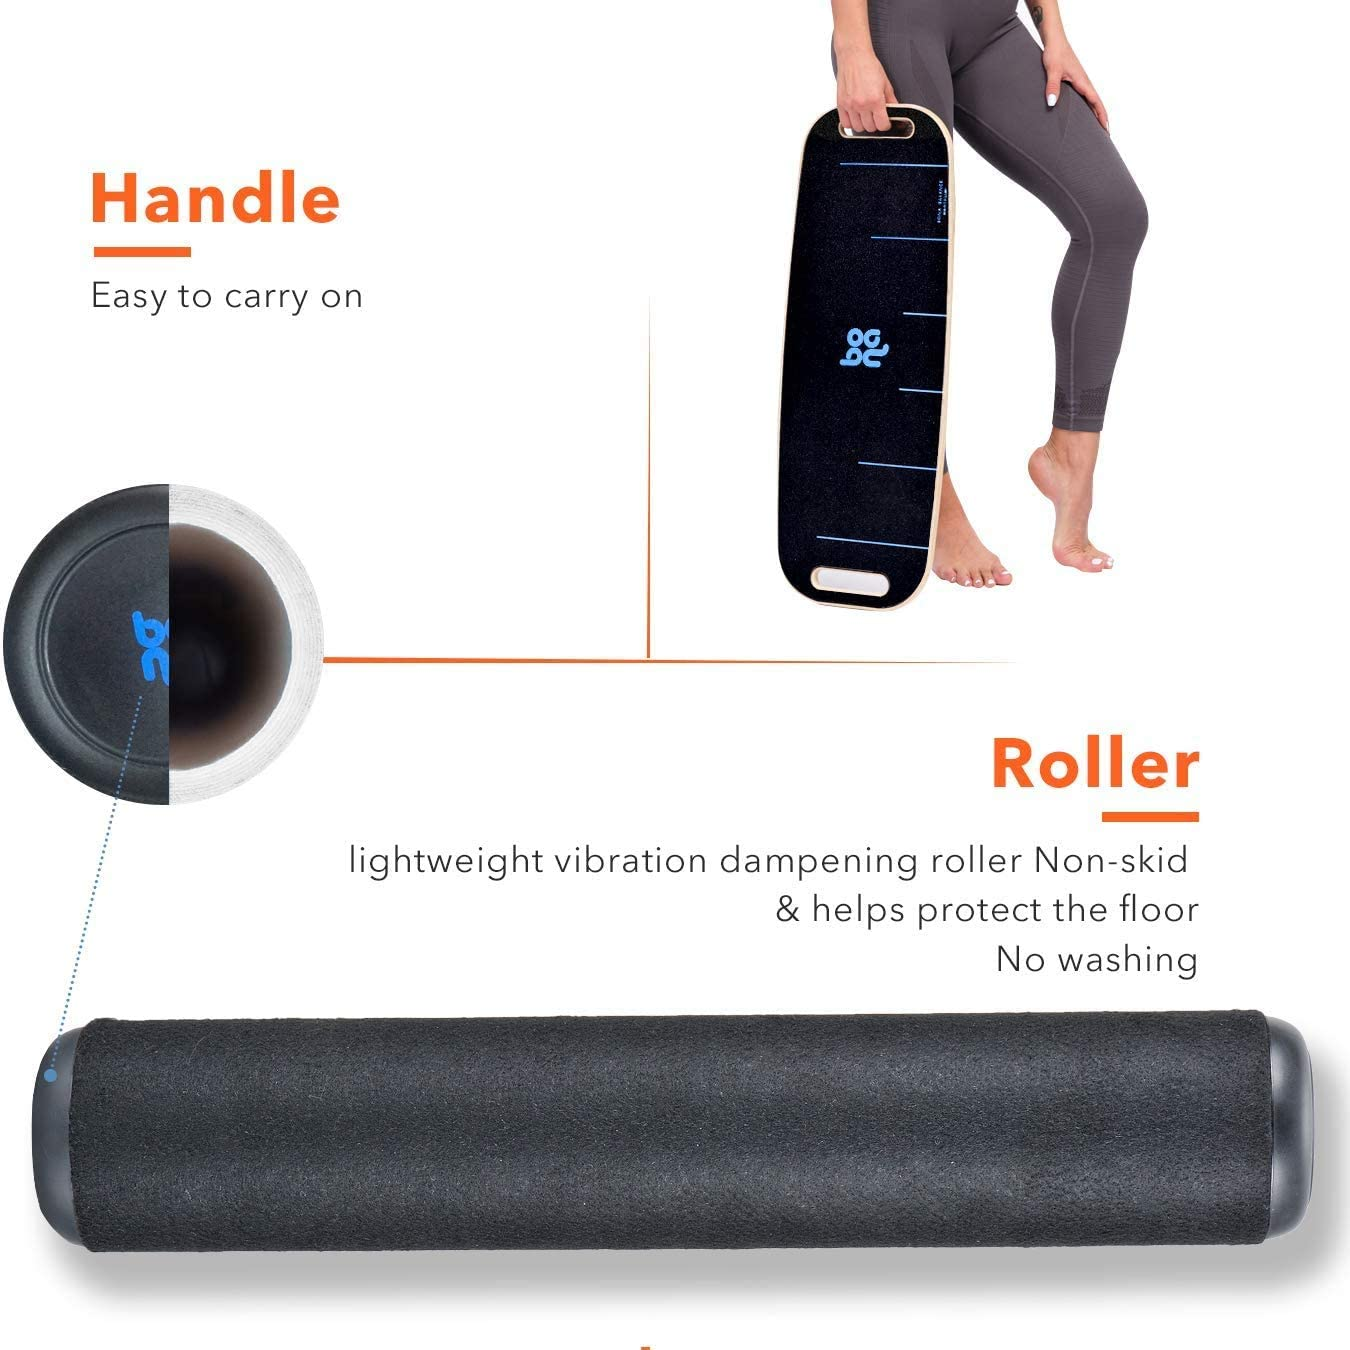 Bona Balance Board Trainer for Fun, Challenging Fitness and Sports Training 3 Different Distance Options 4, 12 and 21 inches